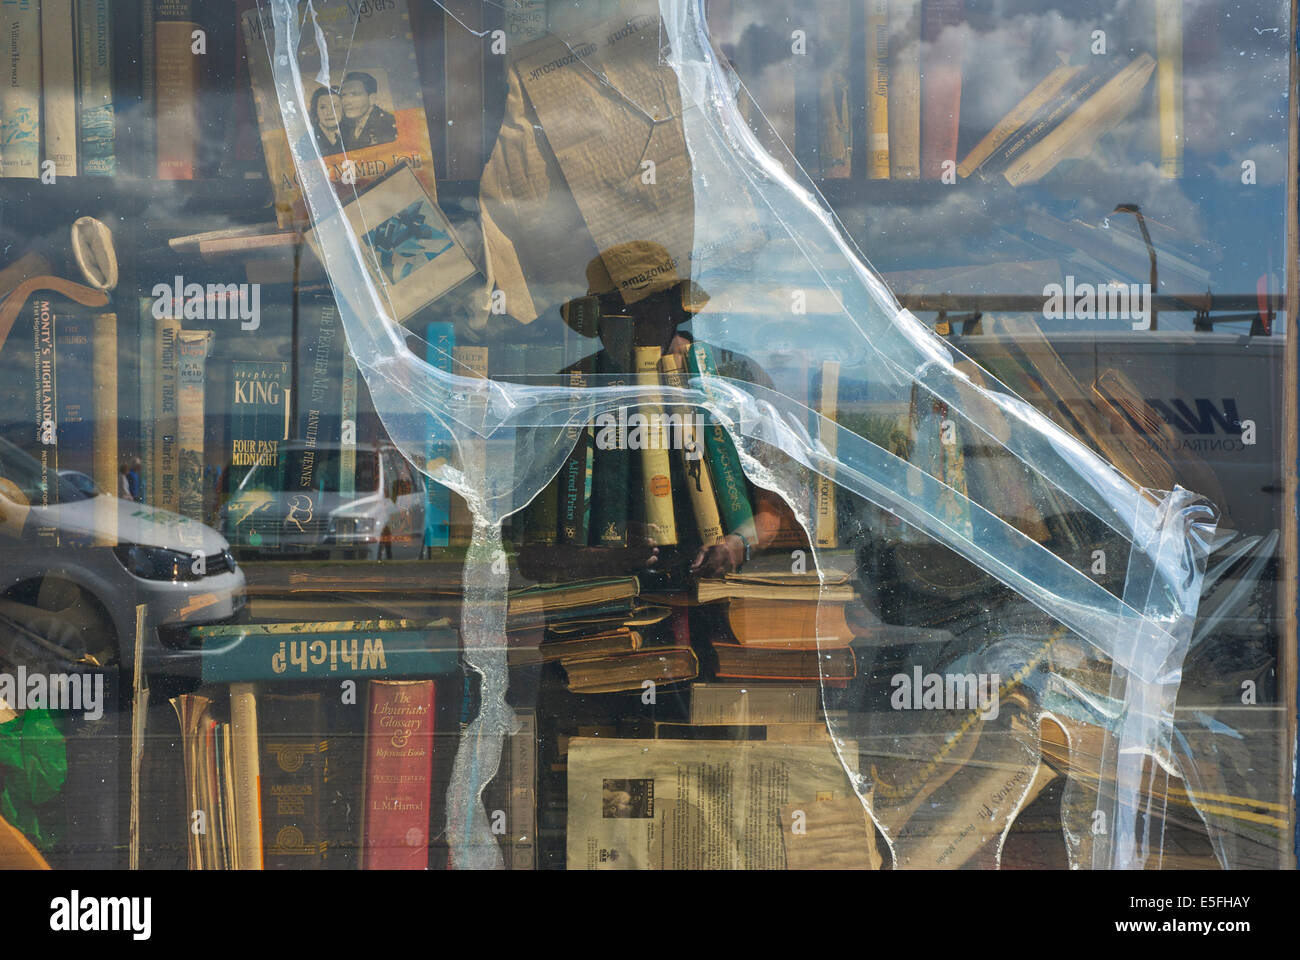 The window display of a scruffy second-hand bookshop - Stock Image